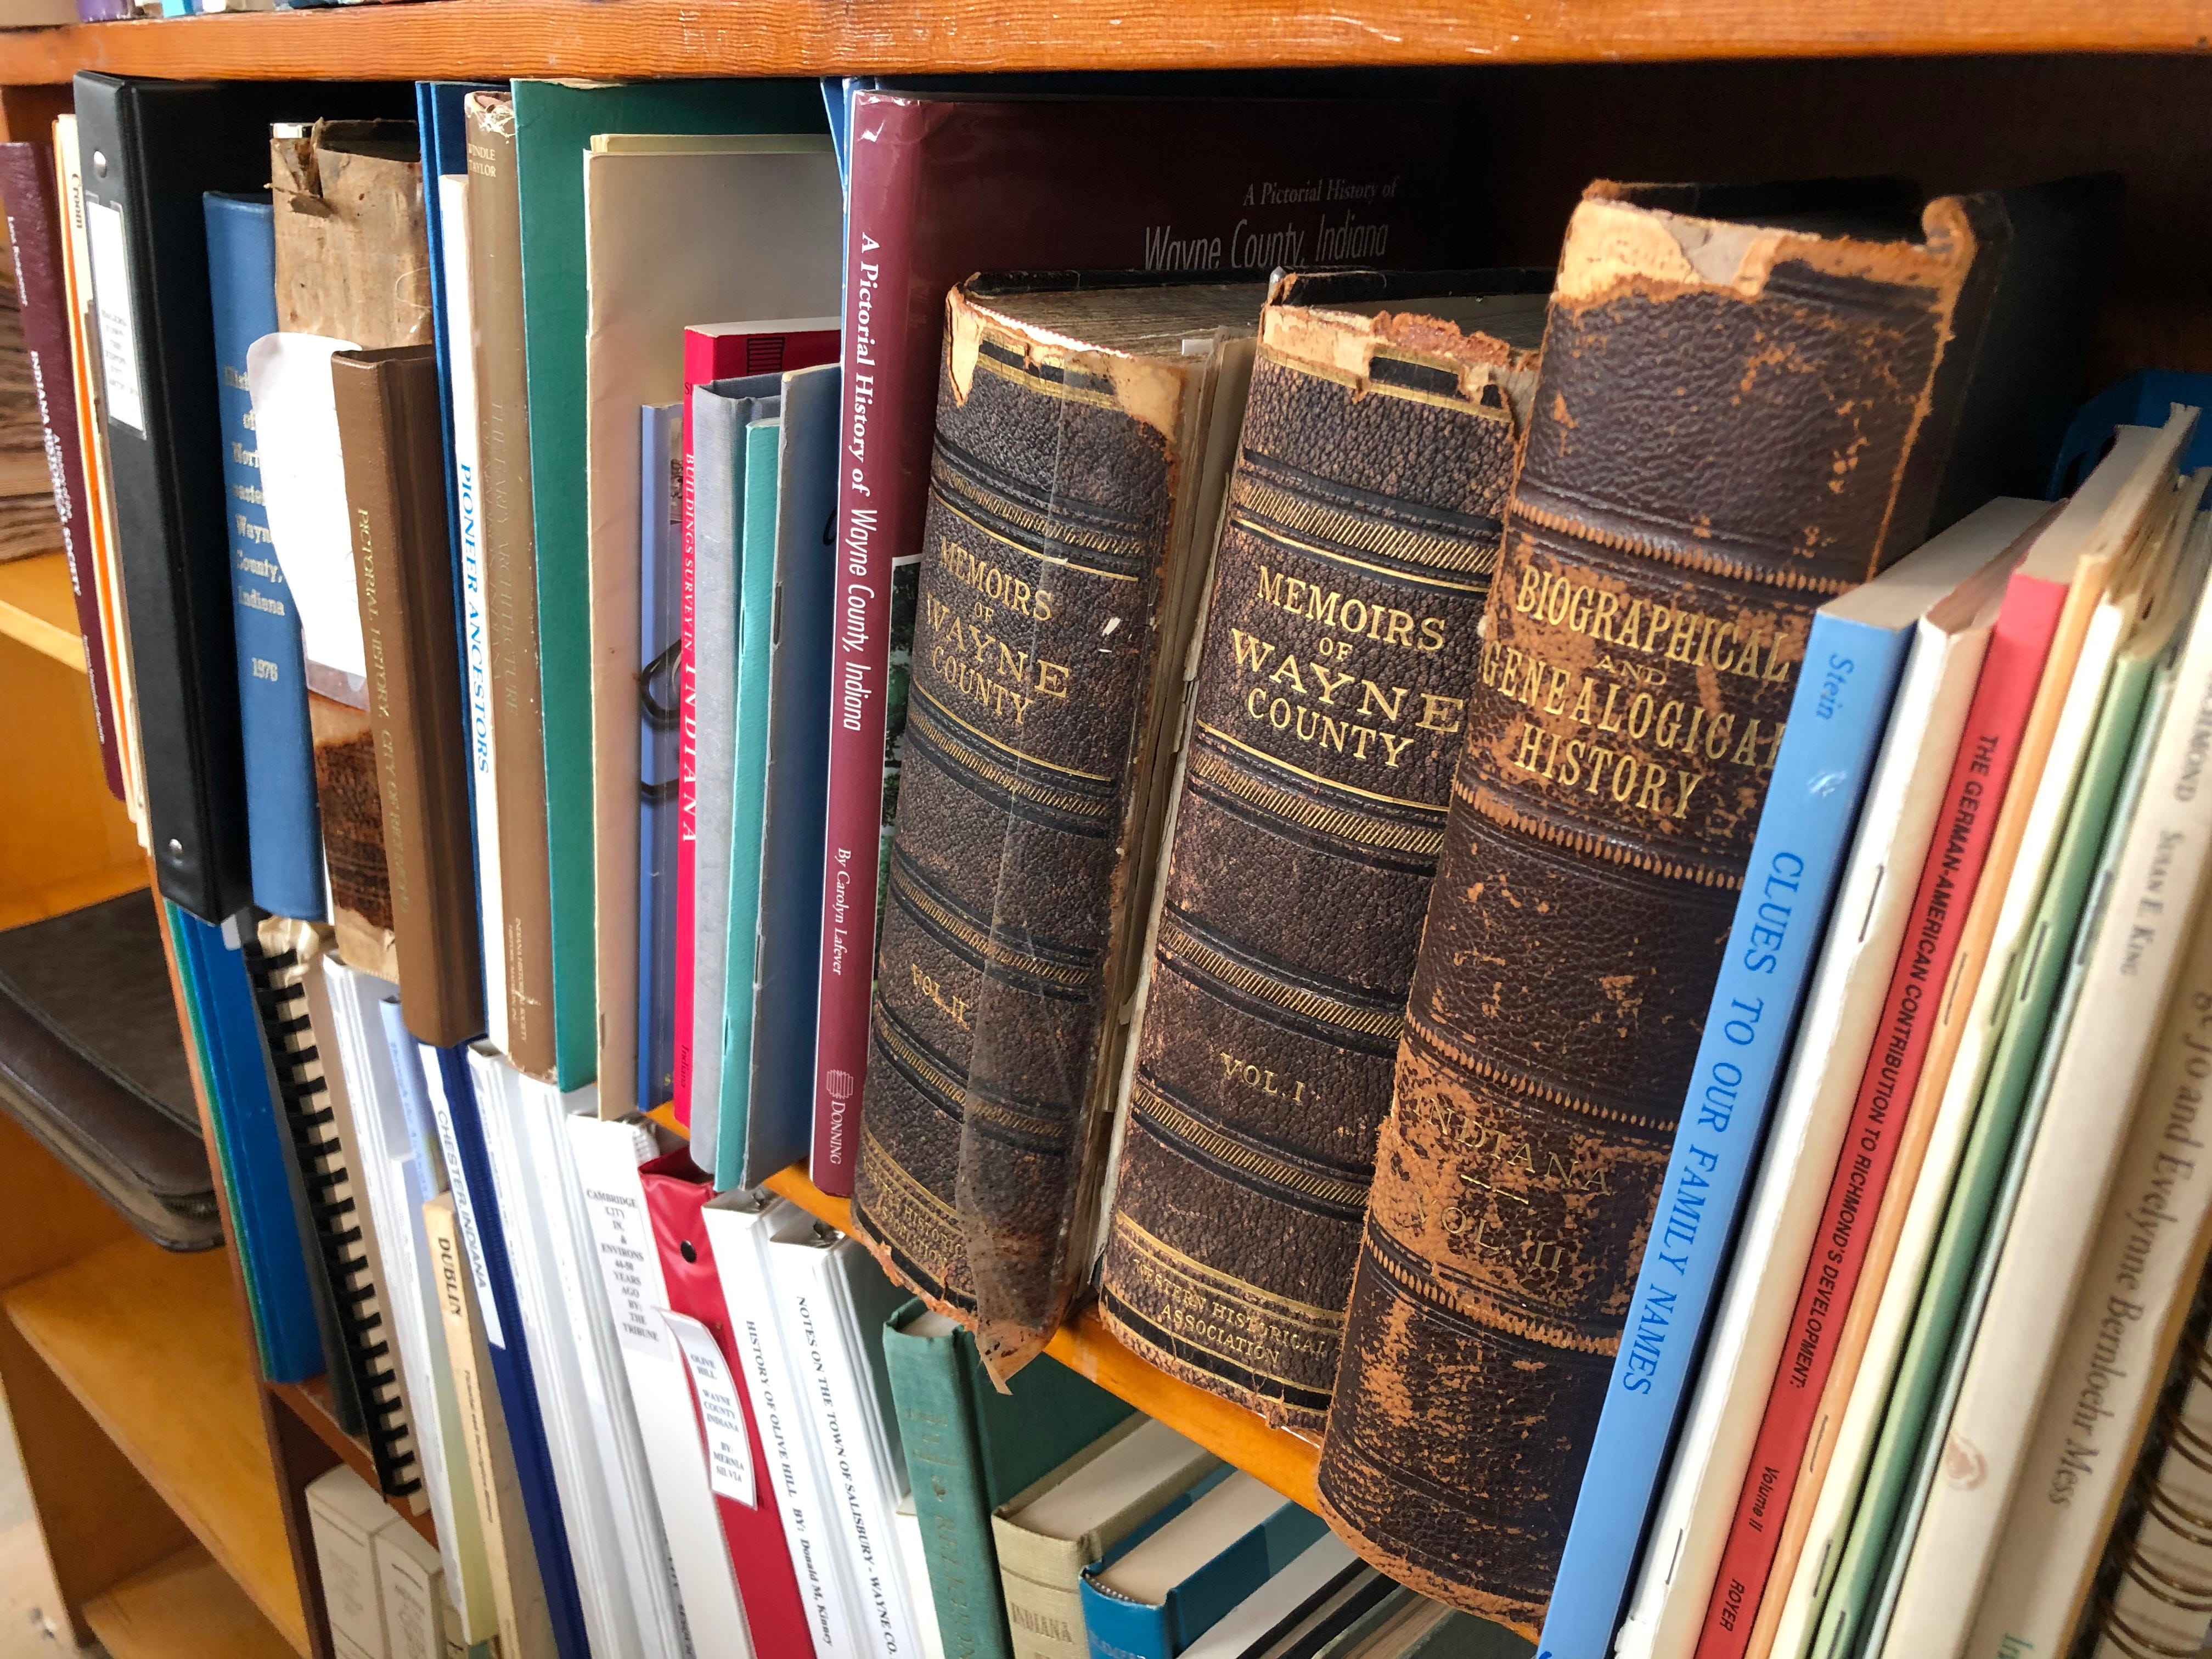 The office of the Wayne County Genealogical Society includes rooms full of reference materials, including books, Richmond city directories, cemetery maps and more.